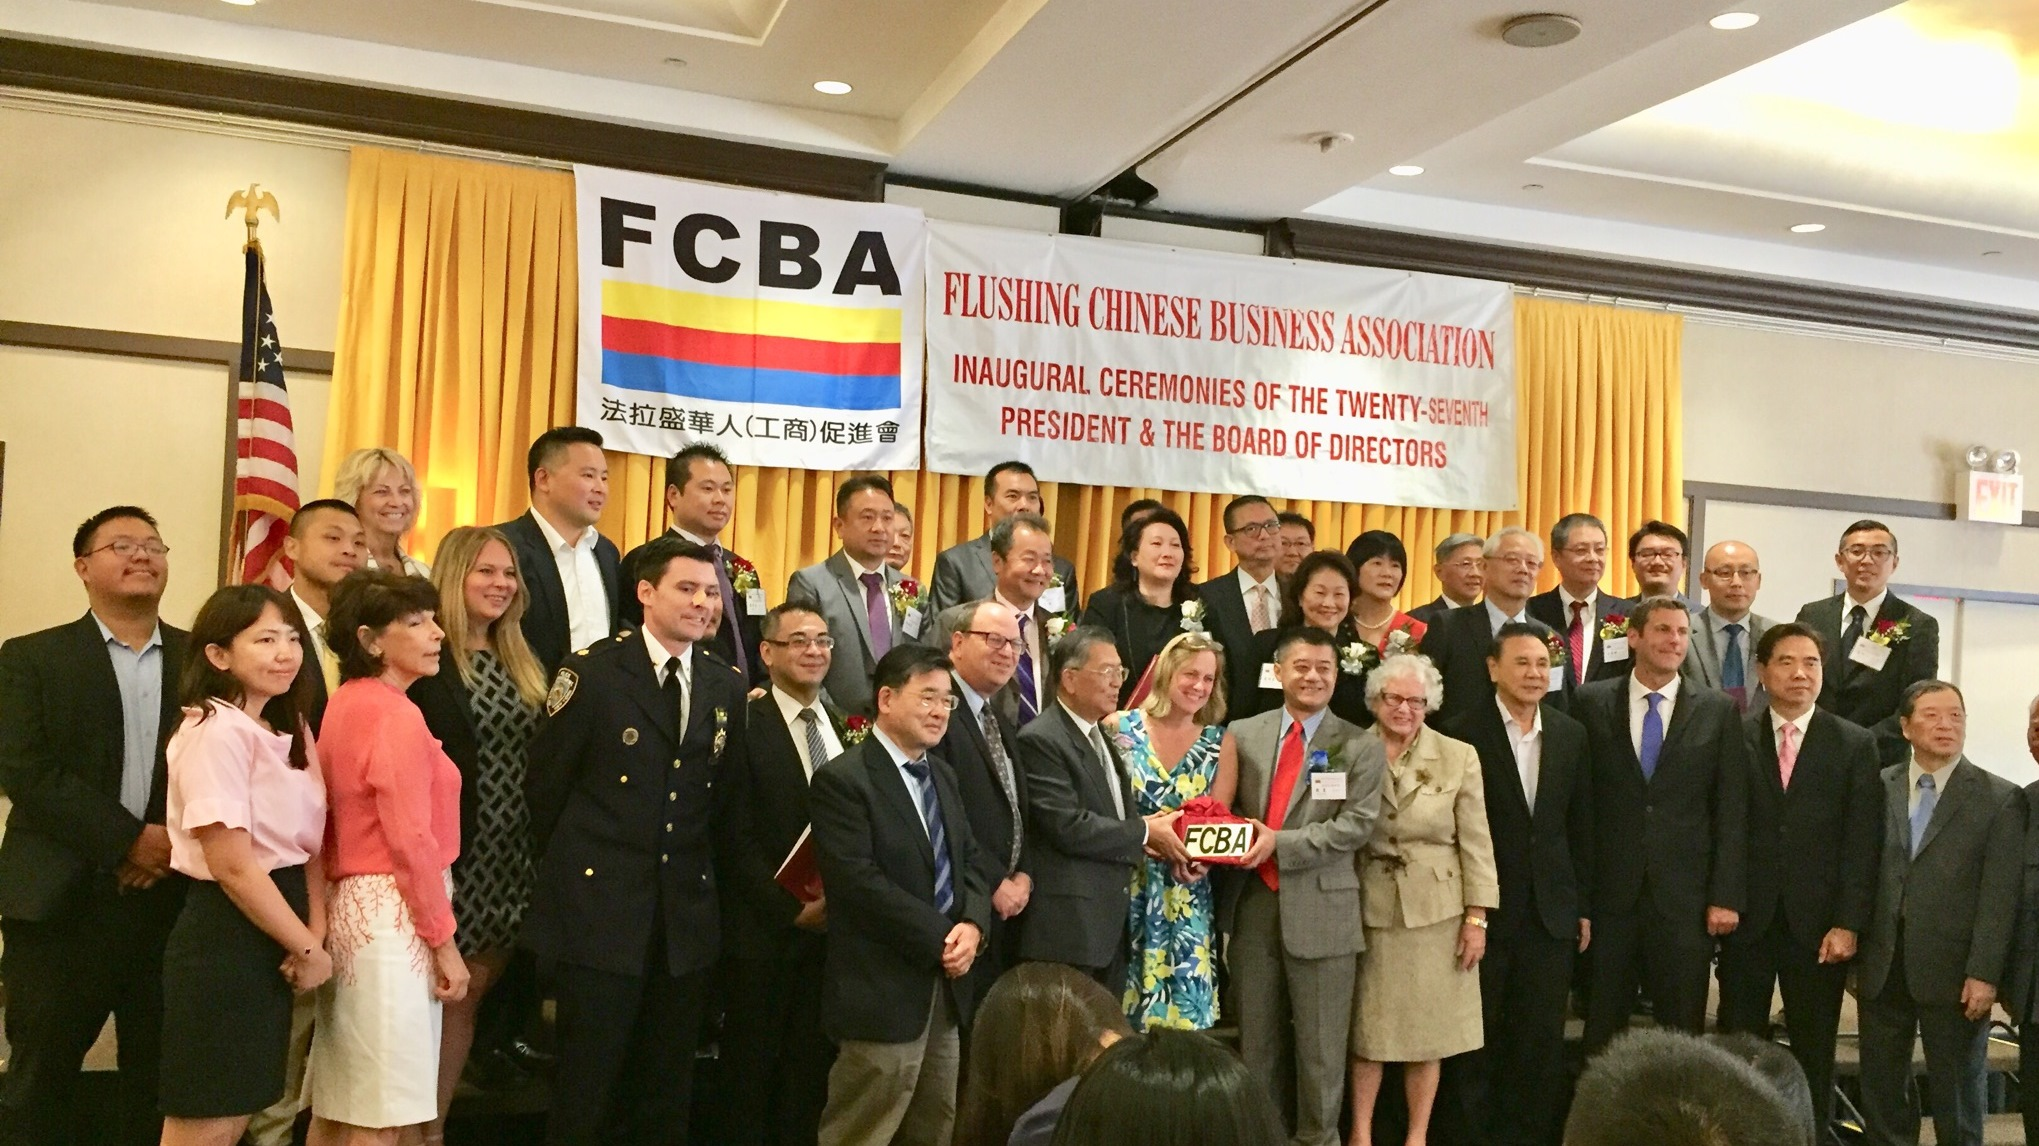 On August 24, 2018, Assemblyman Braunstein attended the Flushing Chinese Business Association's Inauguration of its 27th President.